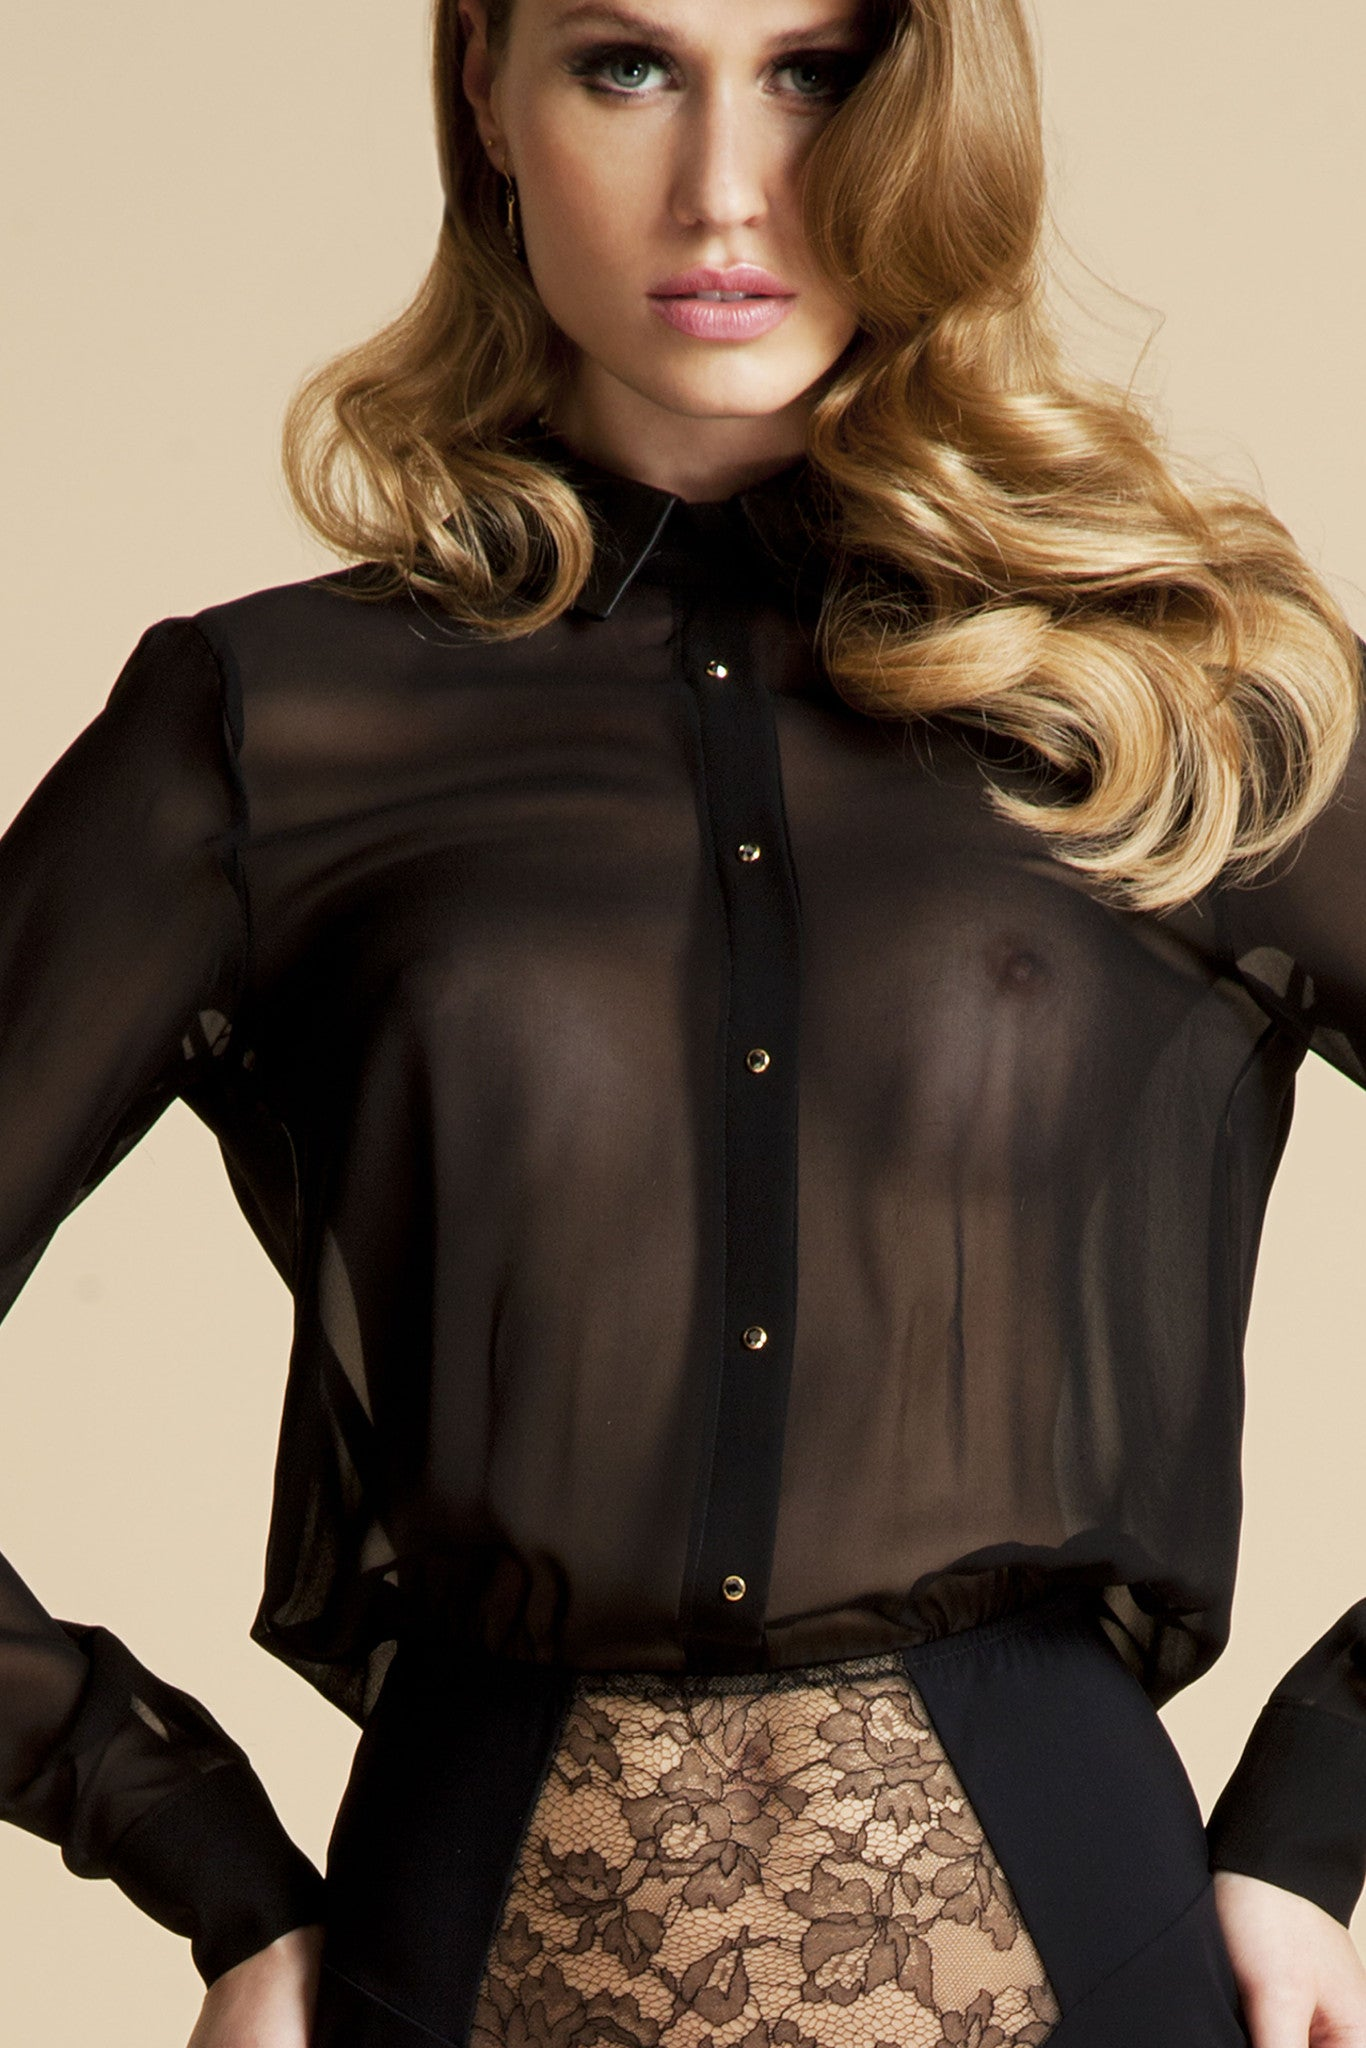 Lula Black sheer bodysuit blouse in black silk with Swarovski crystals